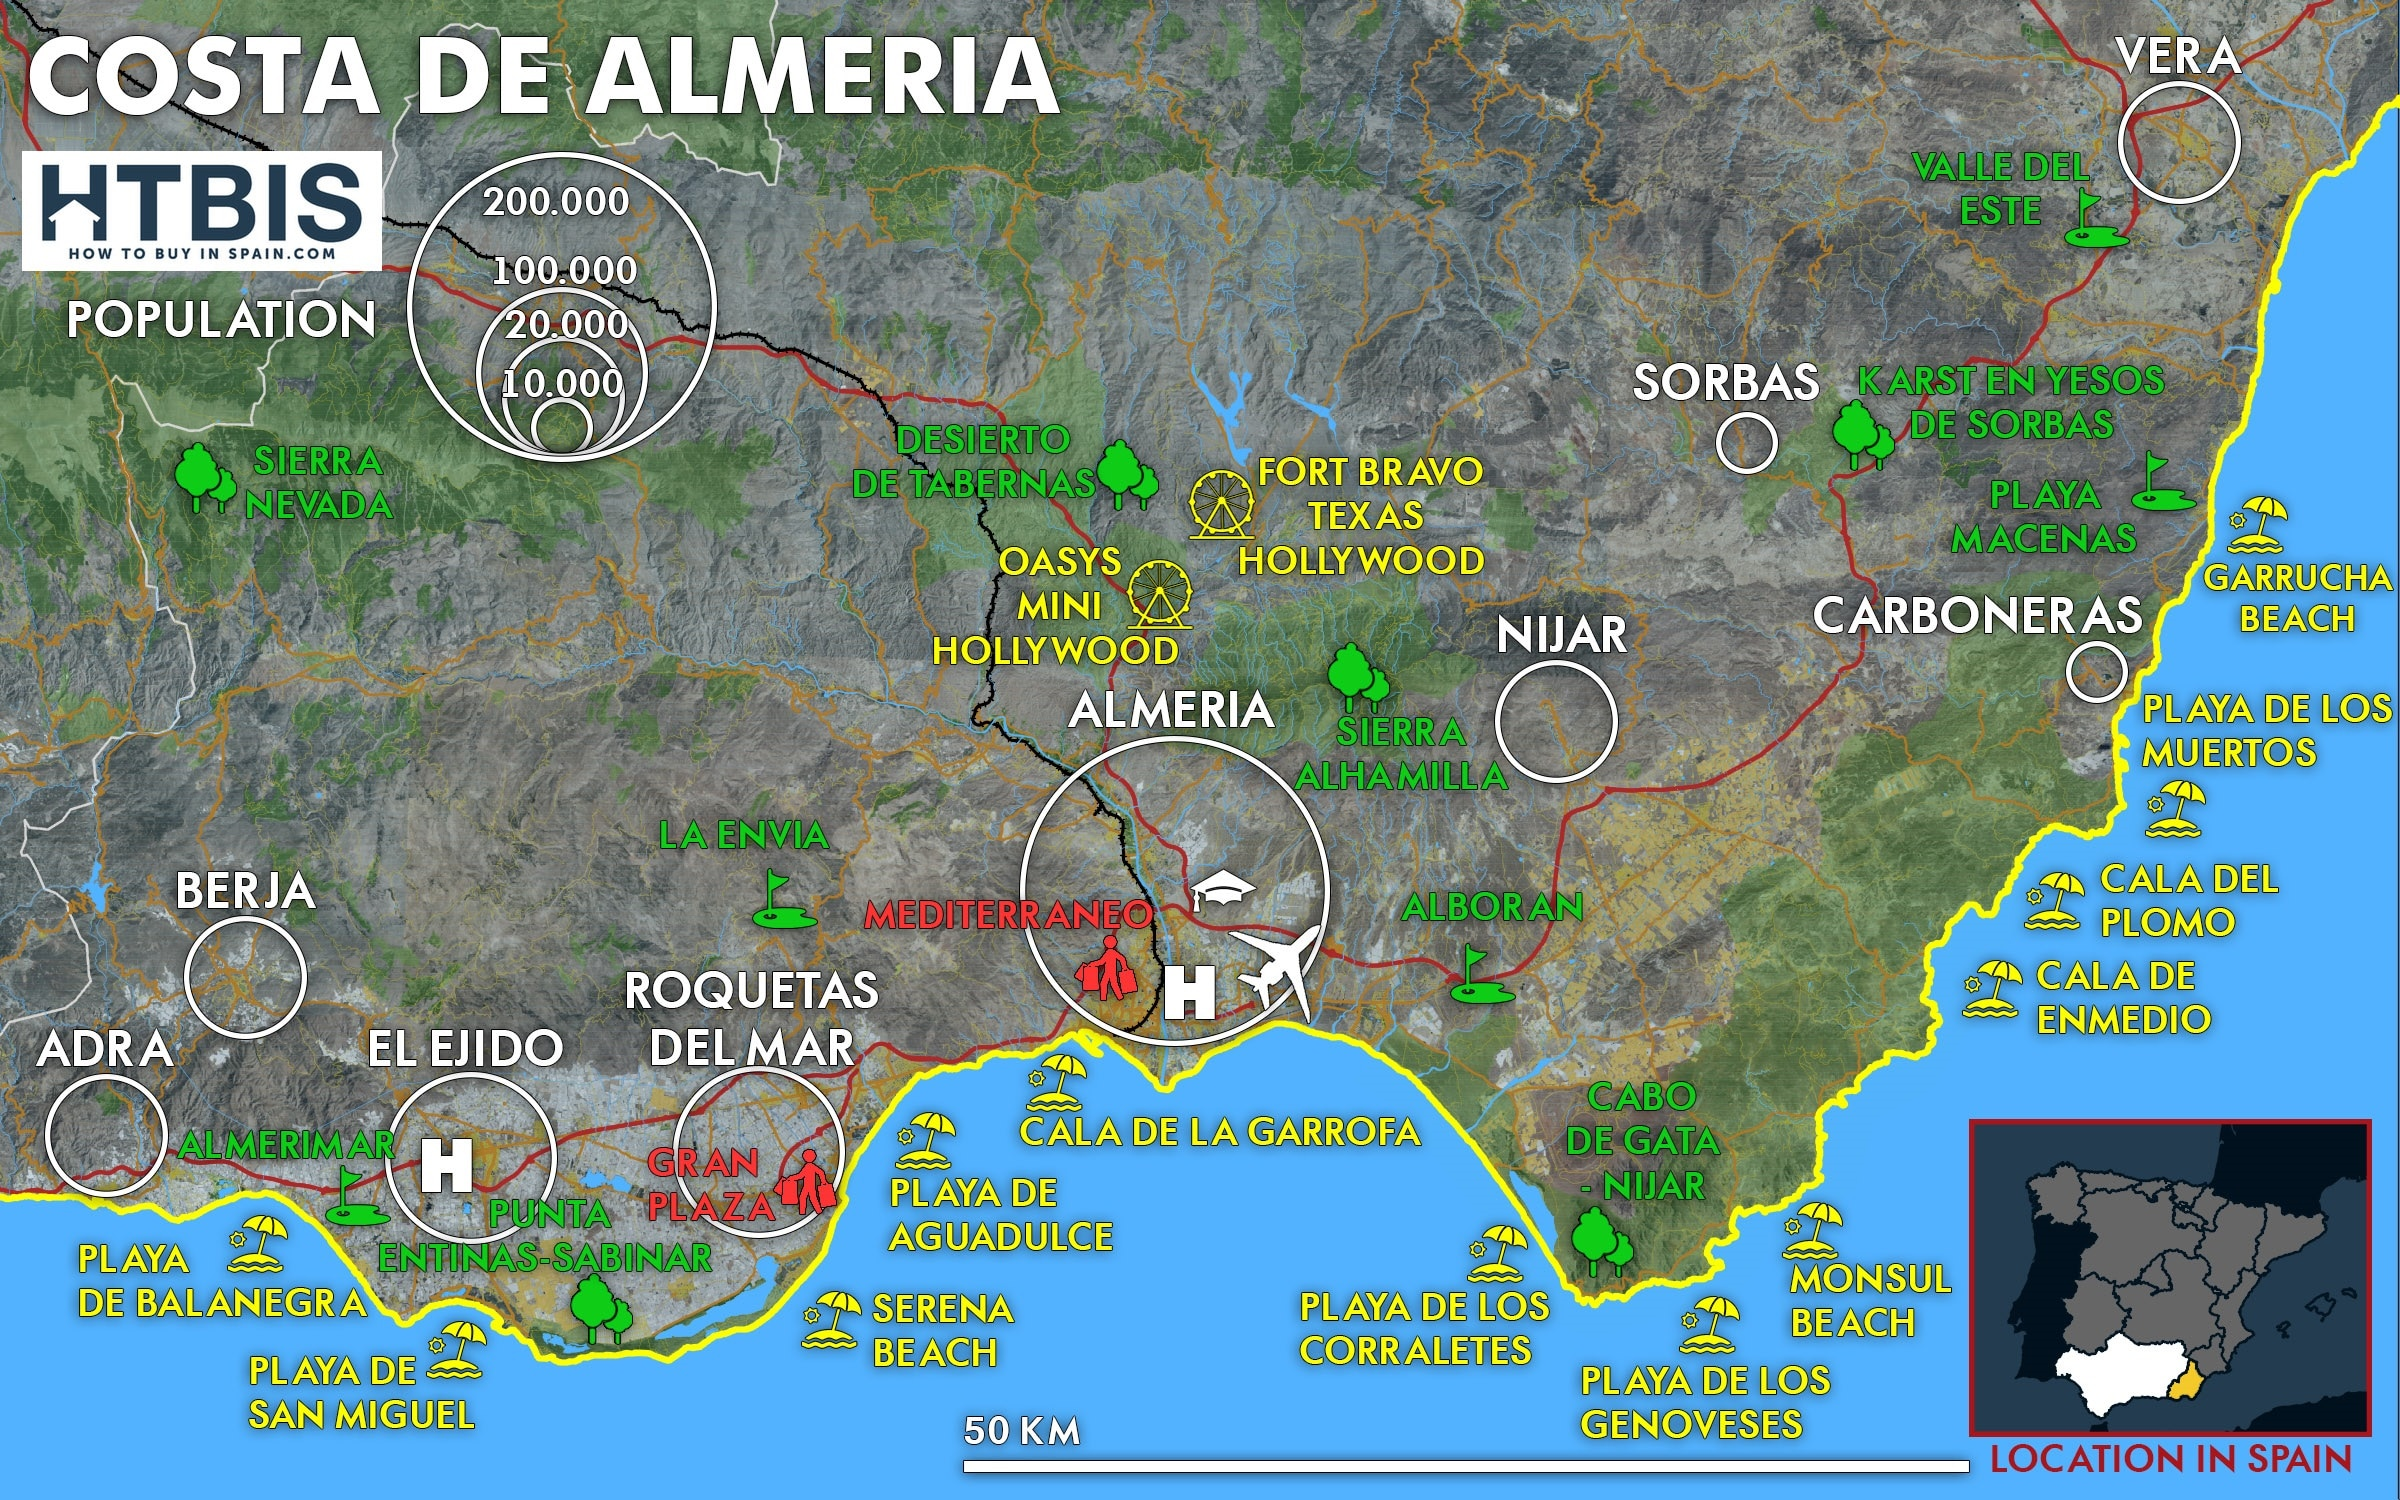 Costa Almeria Map Costa de Almeria map   How to buy in Spain